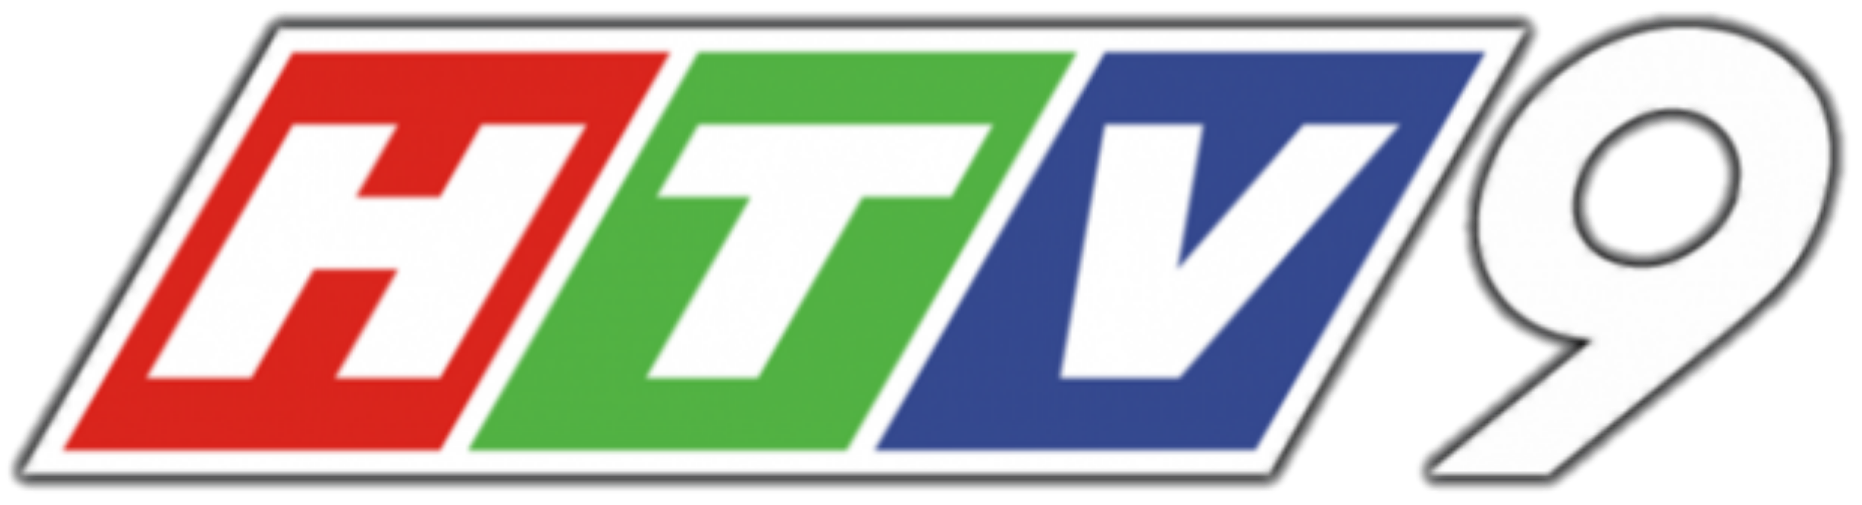 HTV9 (2016-present).png